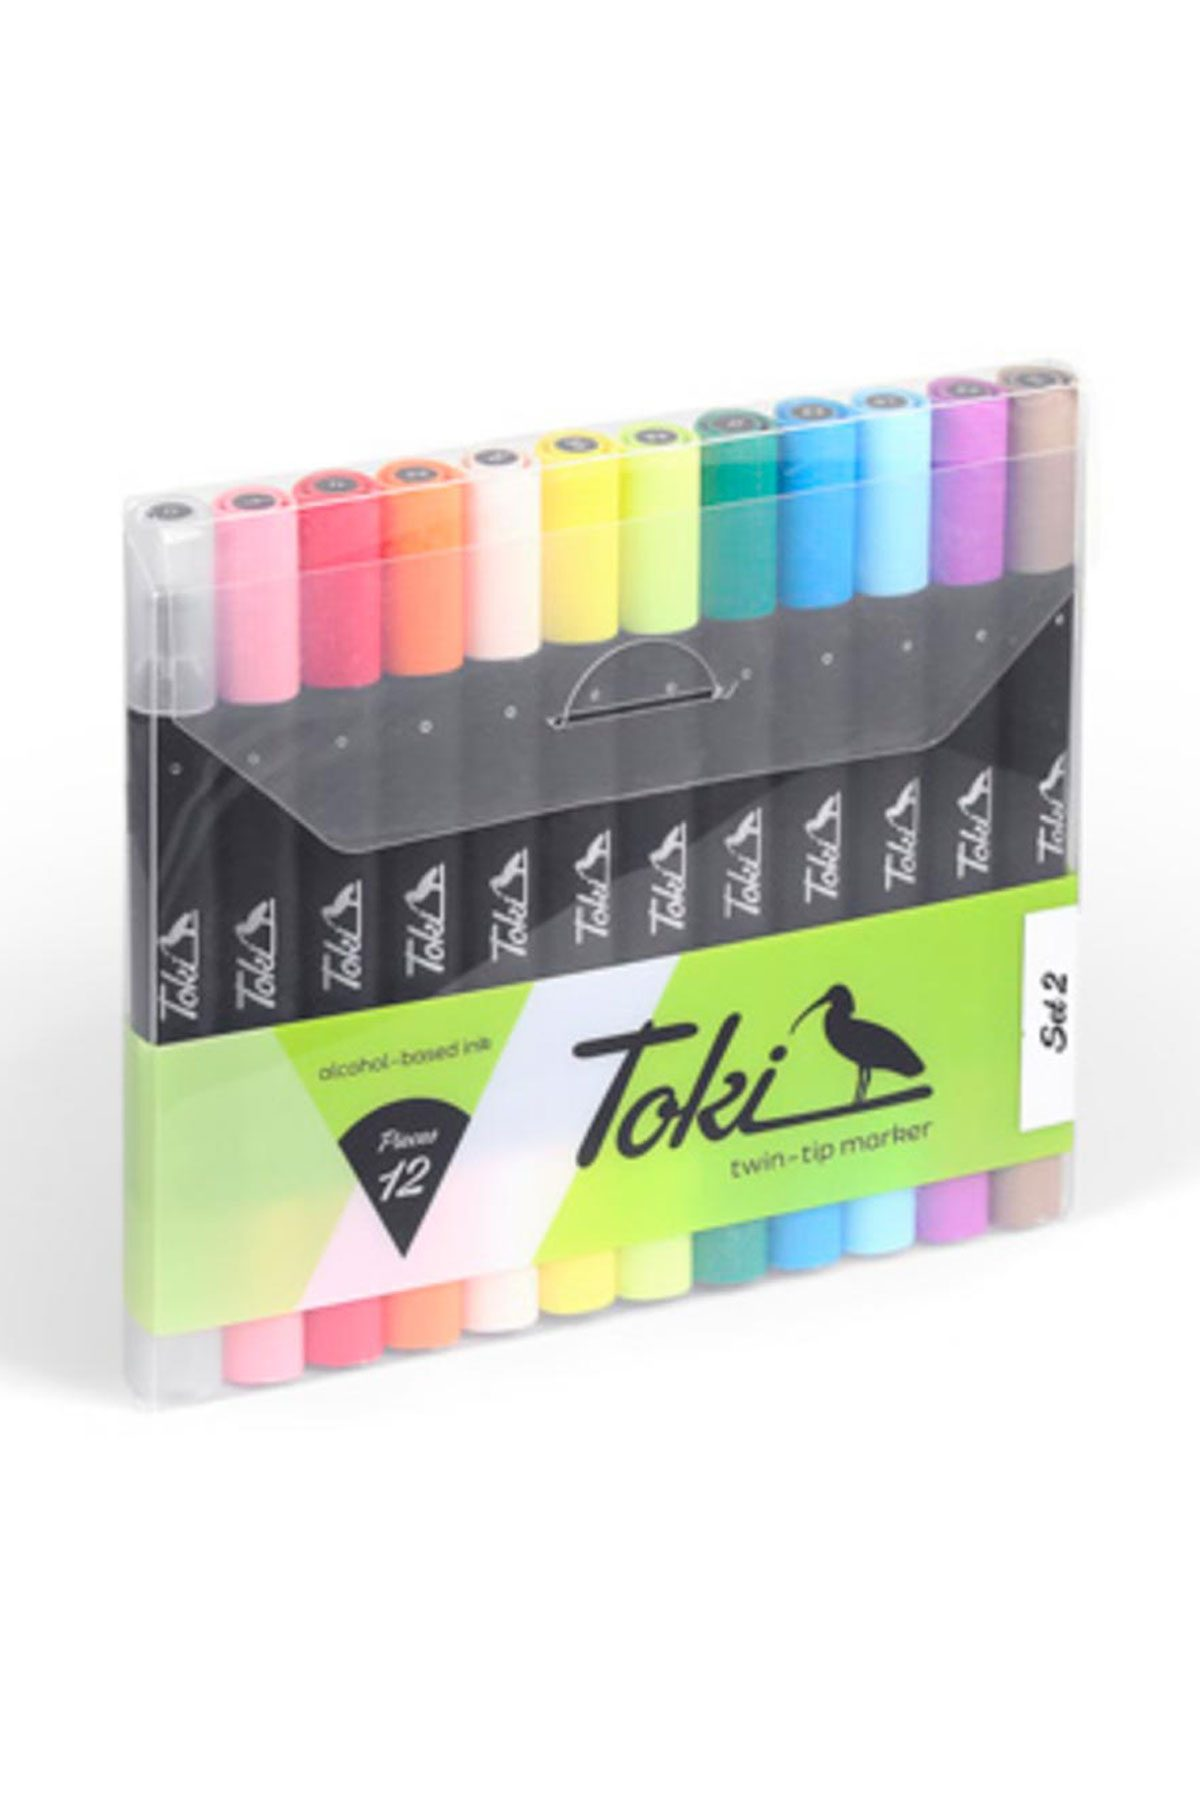 Toki LAYOUTMARKER 12 Set 2